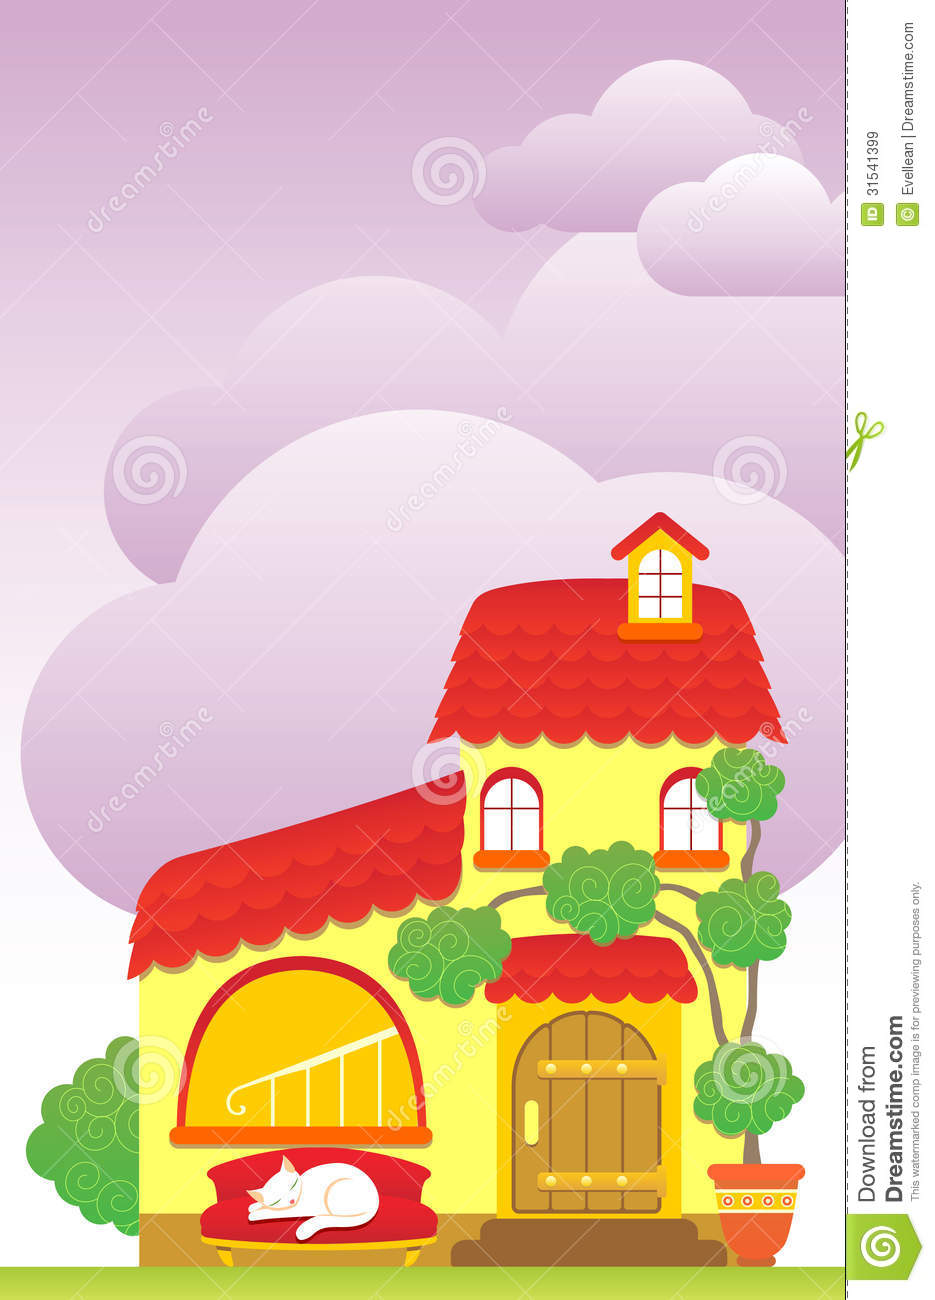 Cartoon house royalty free stock images image 31541399 - Images of home ...